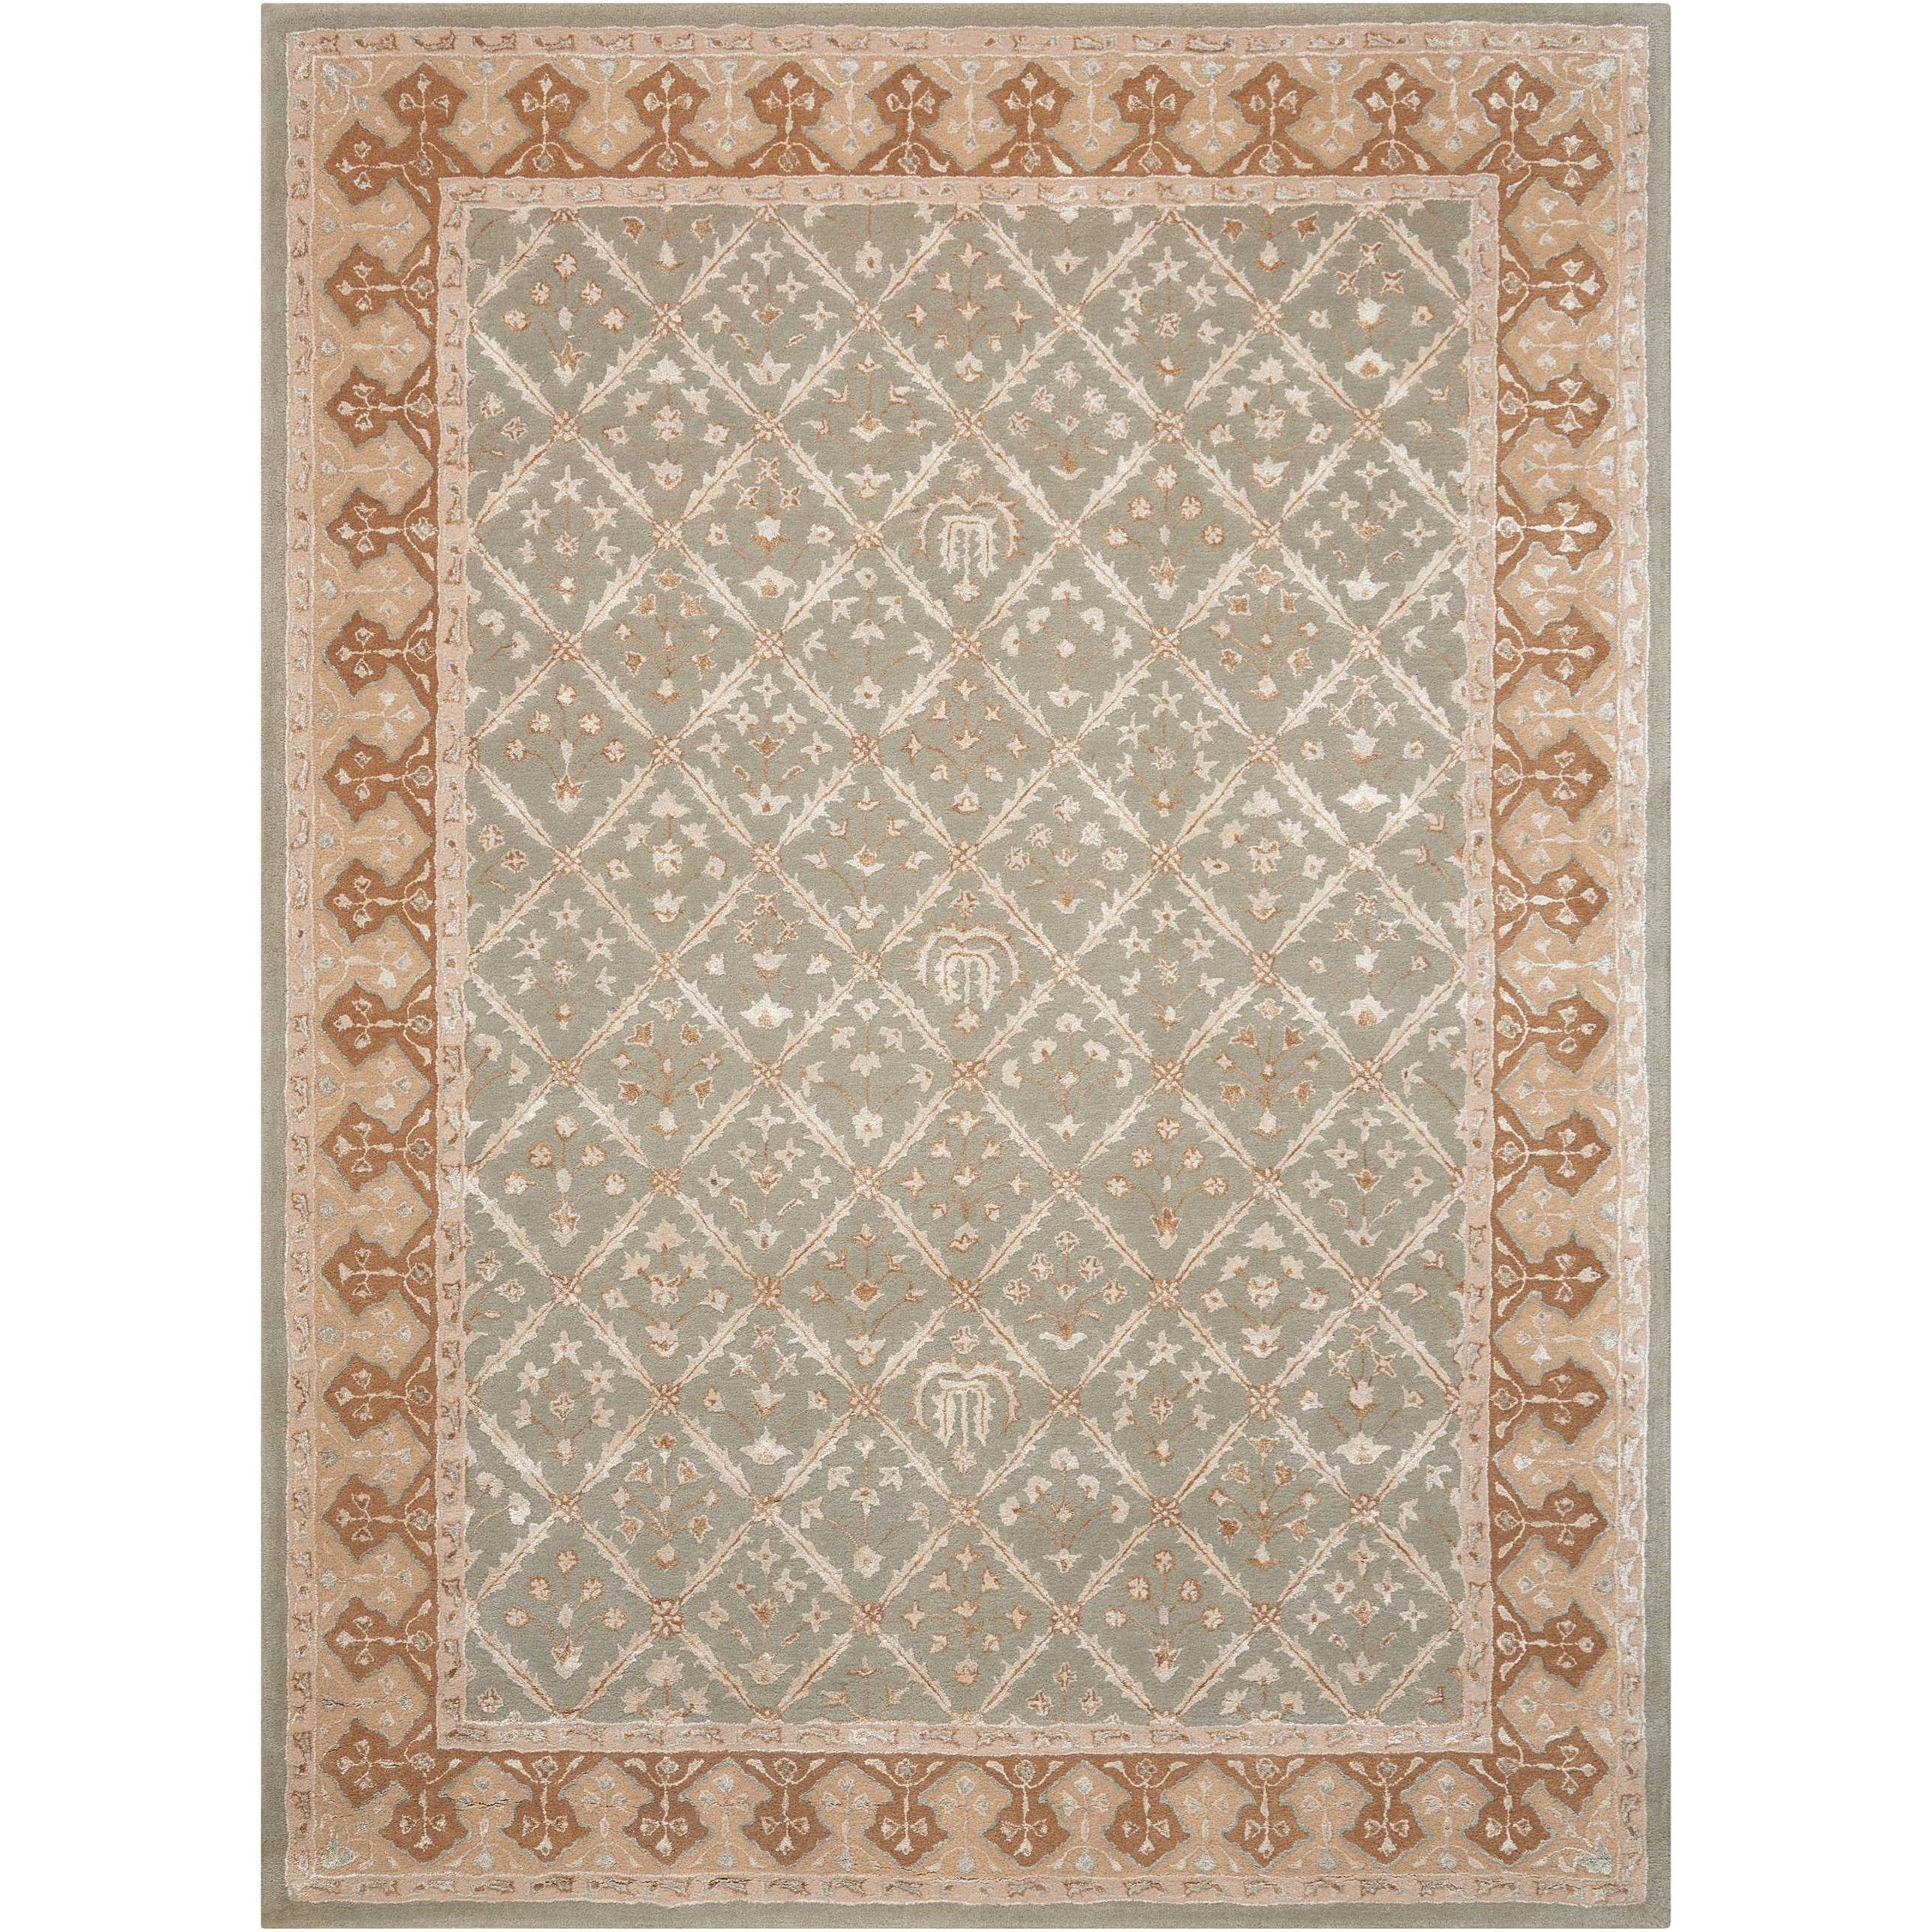 8' x 11' Light Green Rectangle Rug